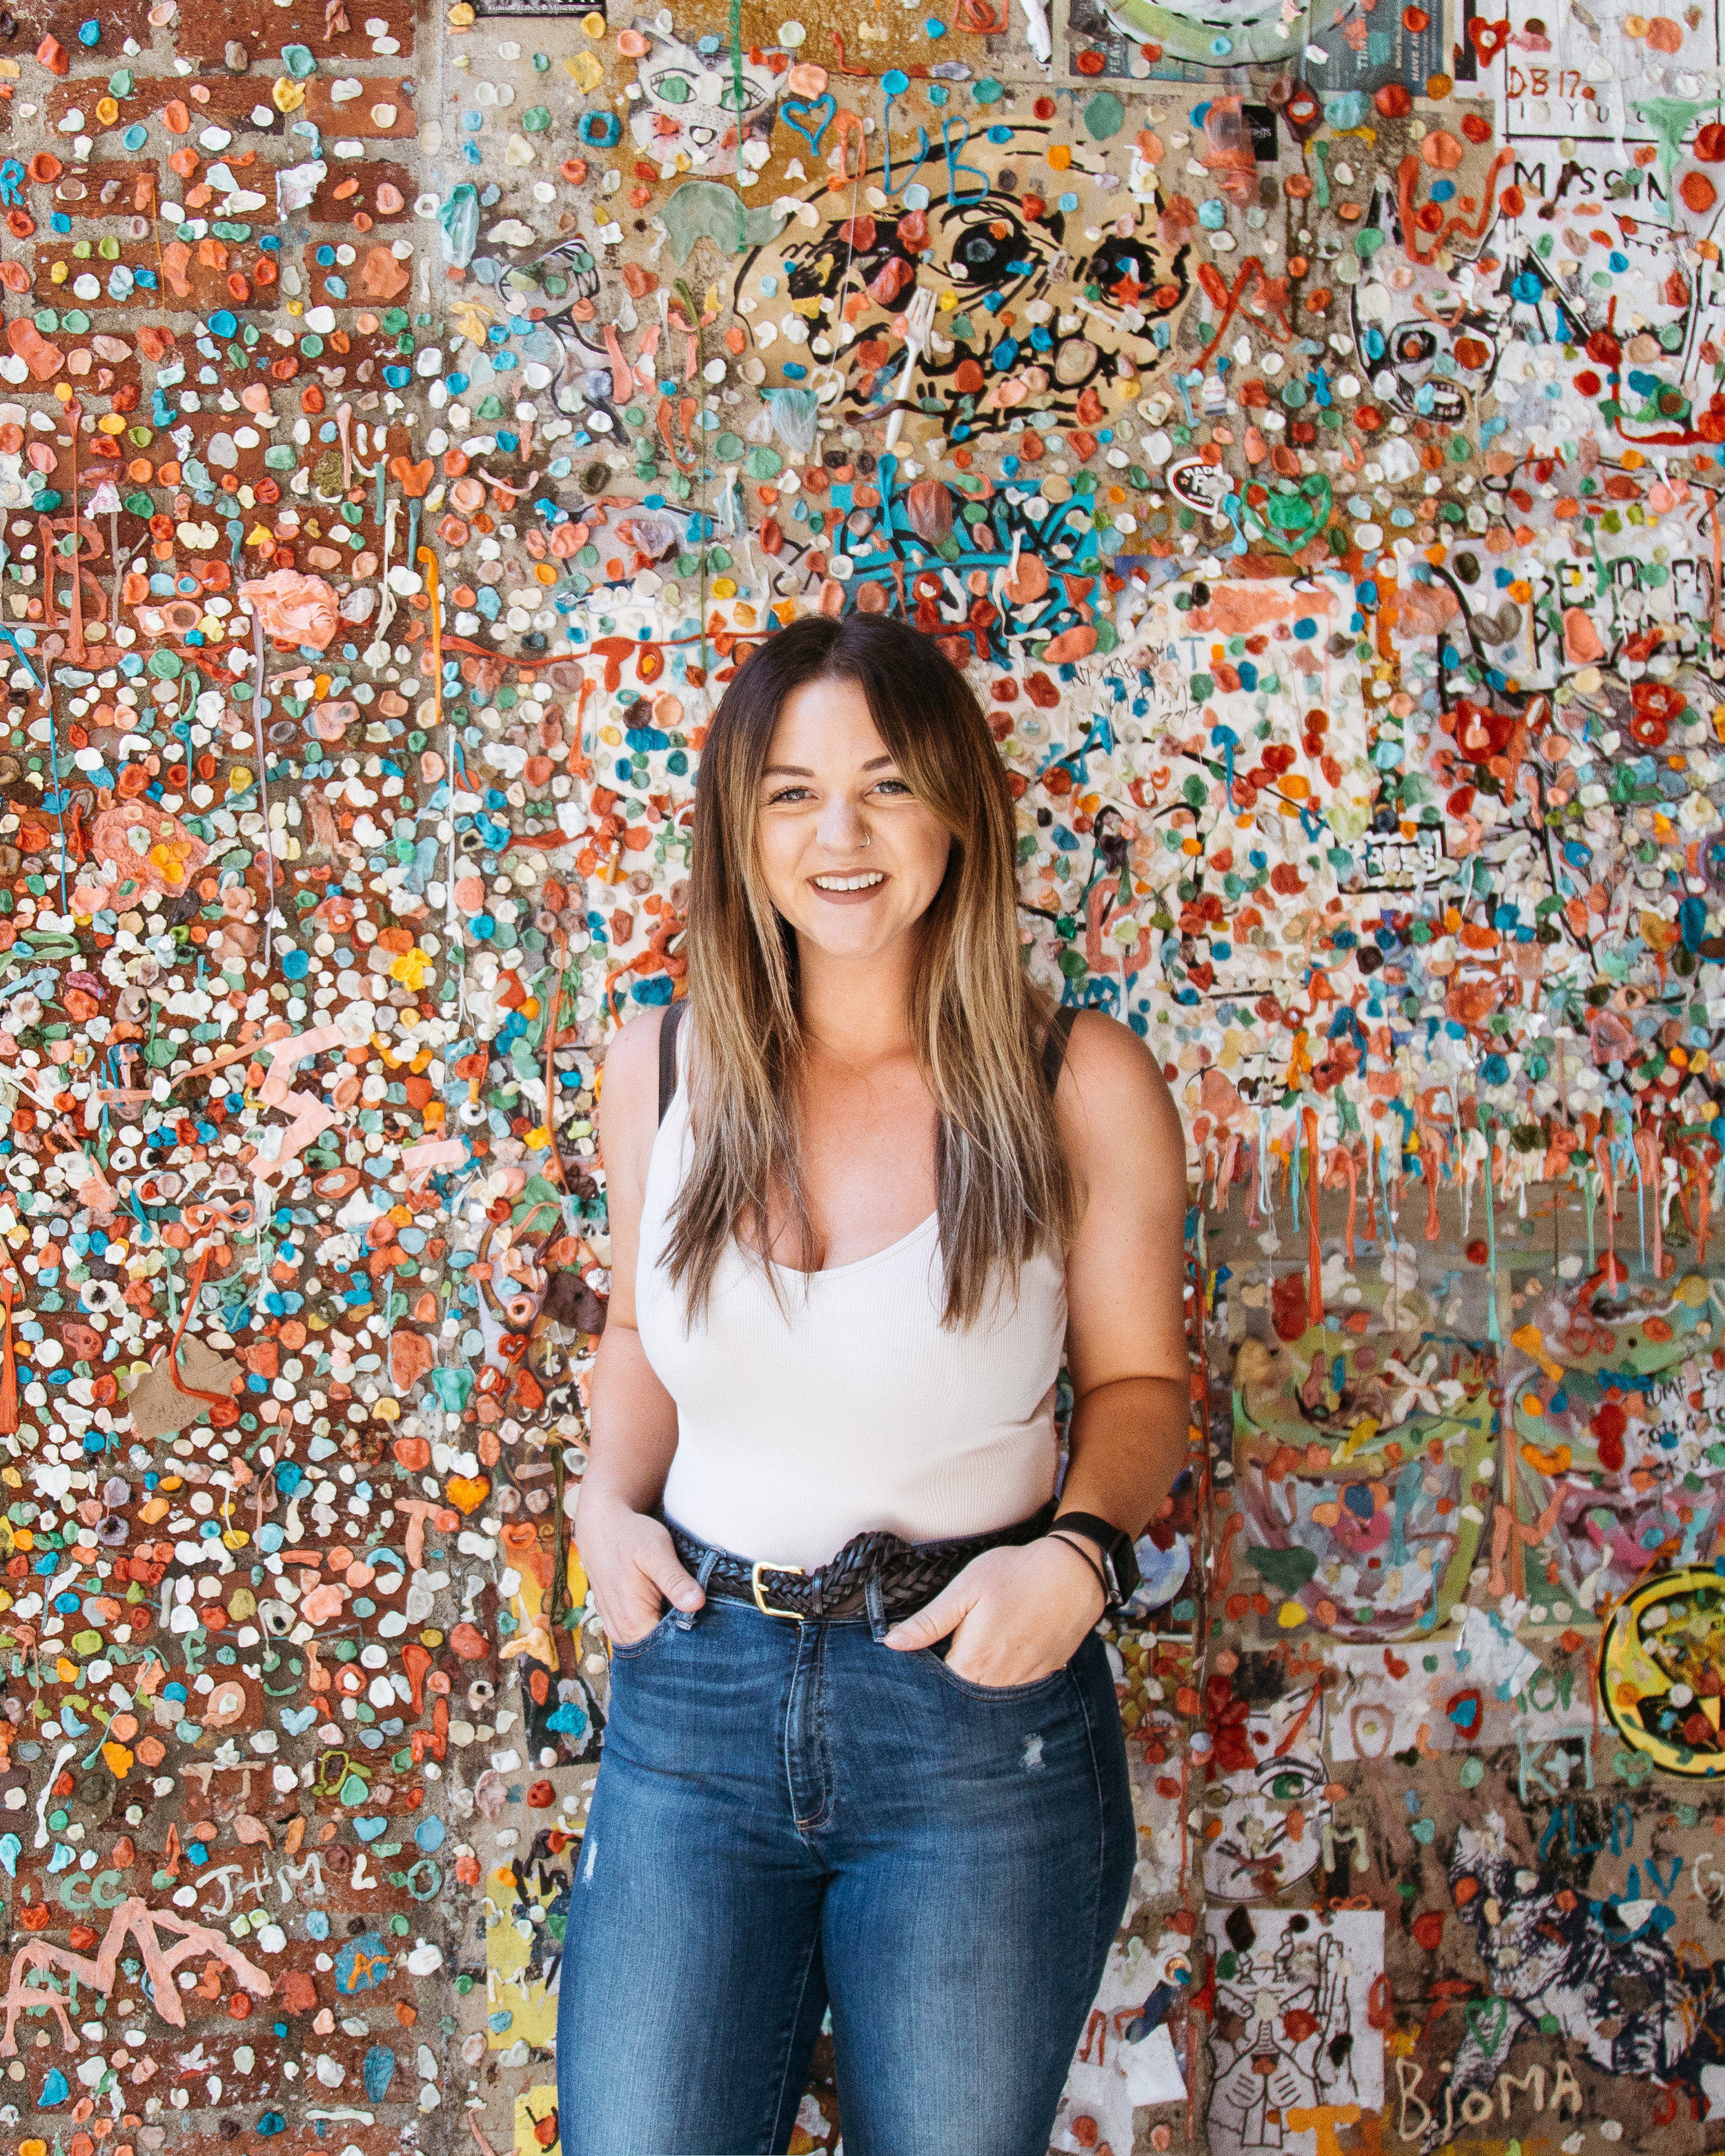 The Gum Wall, Pike Place Market